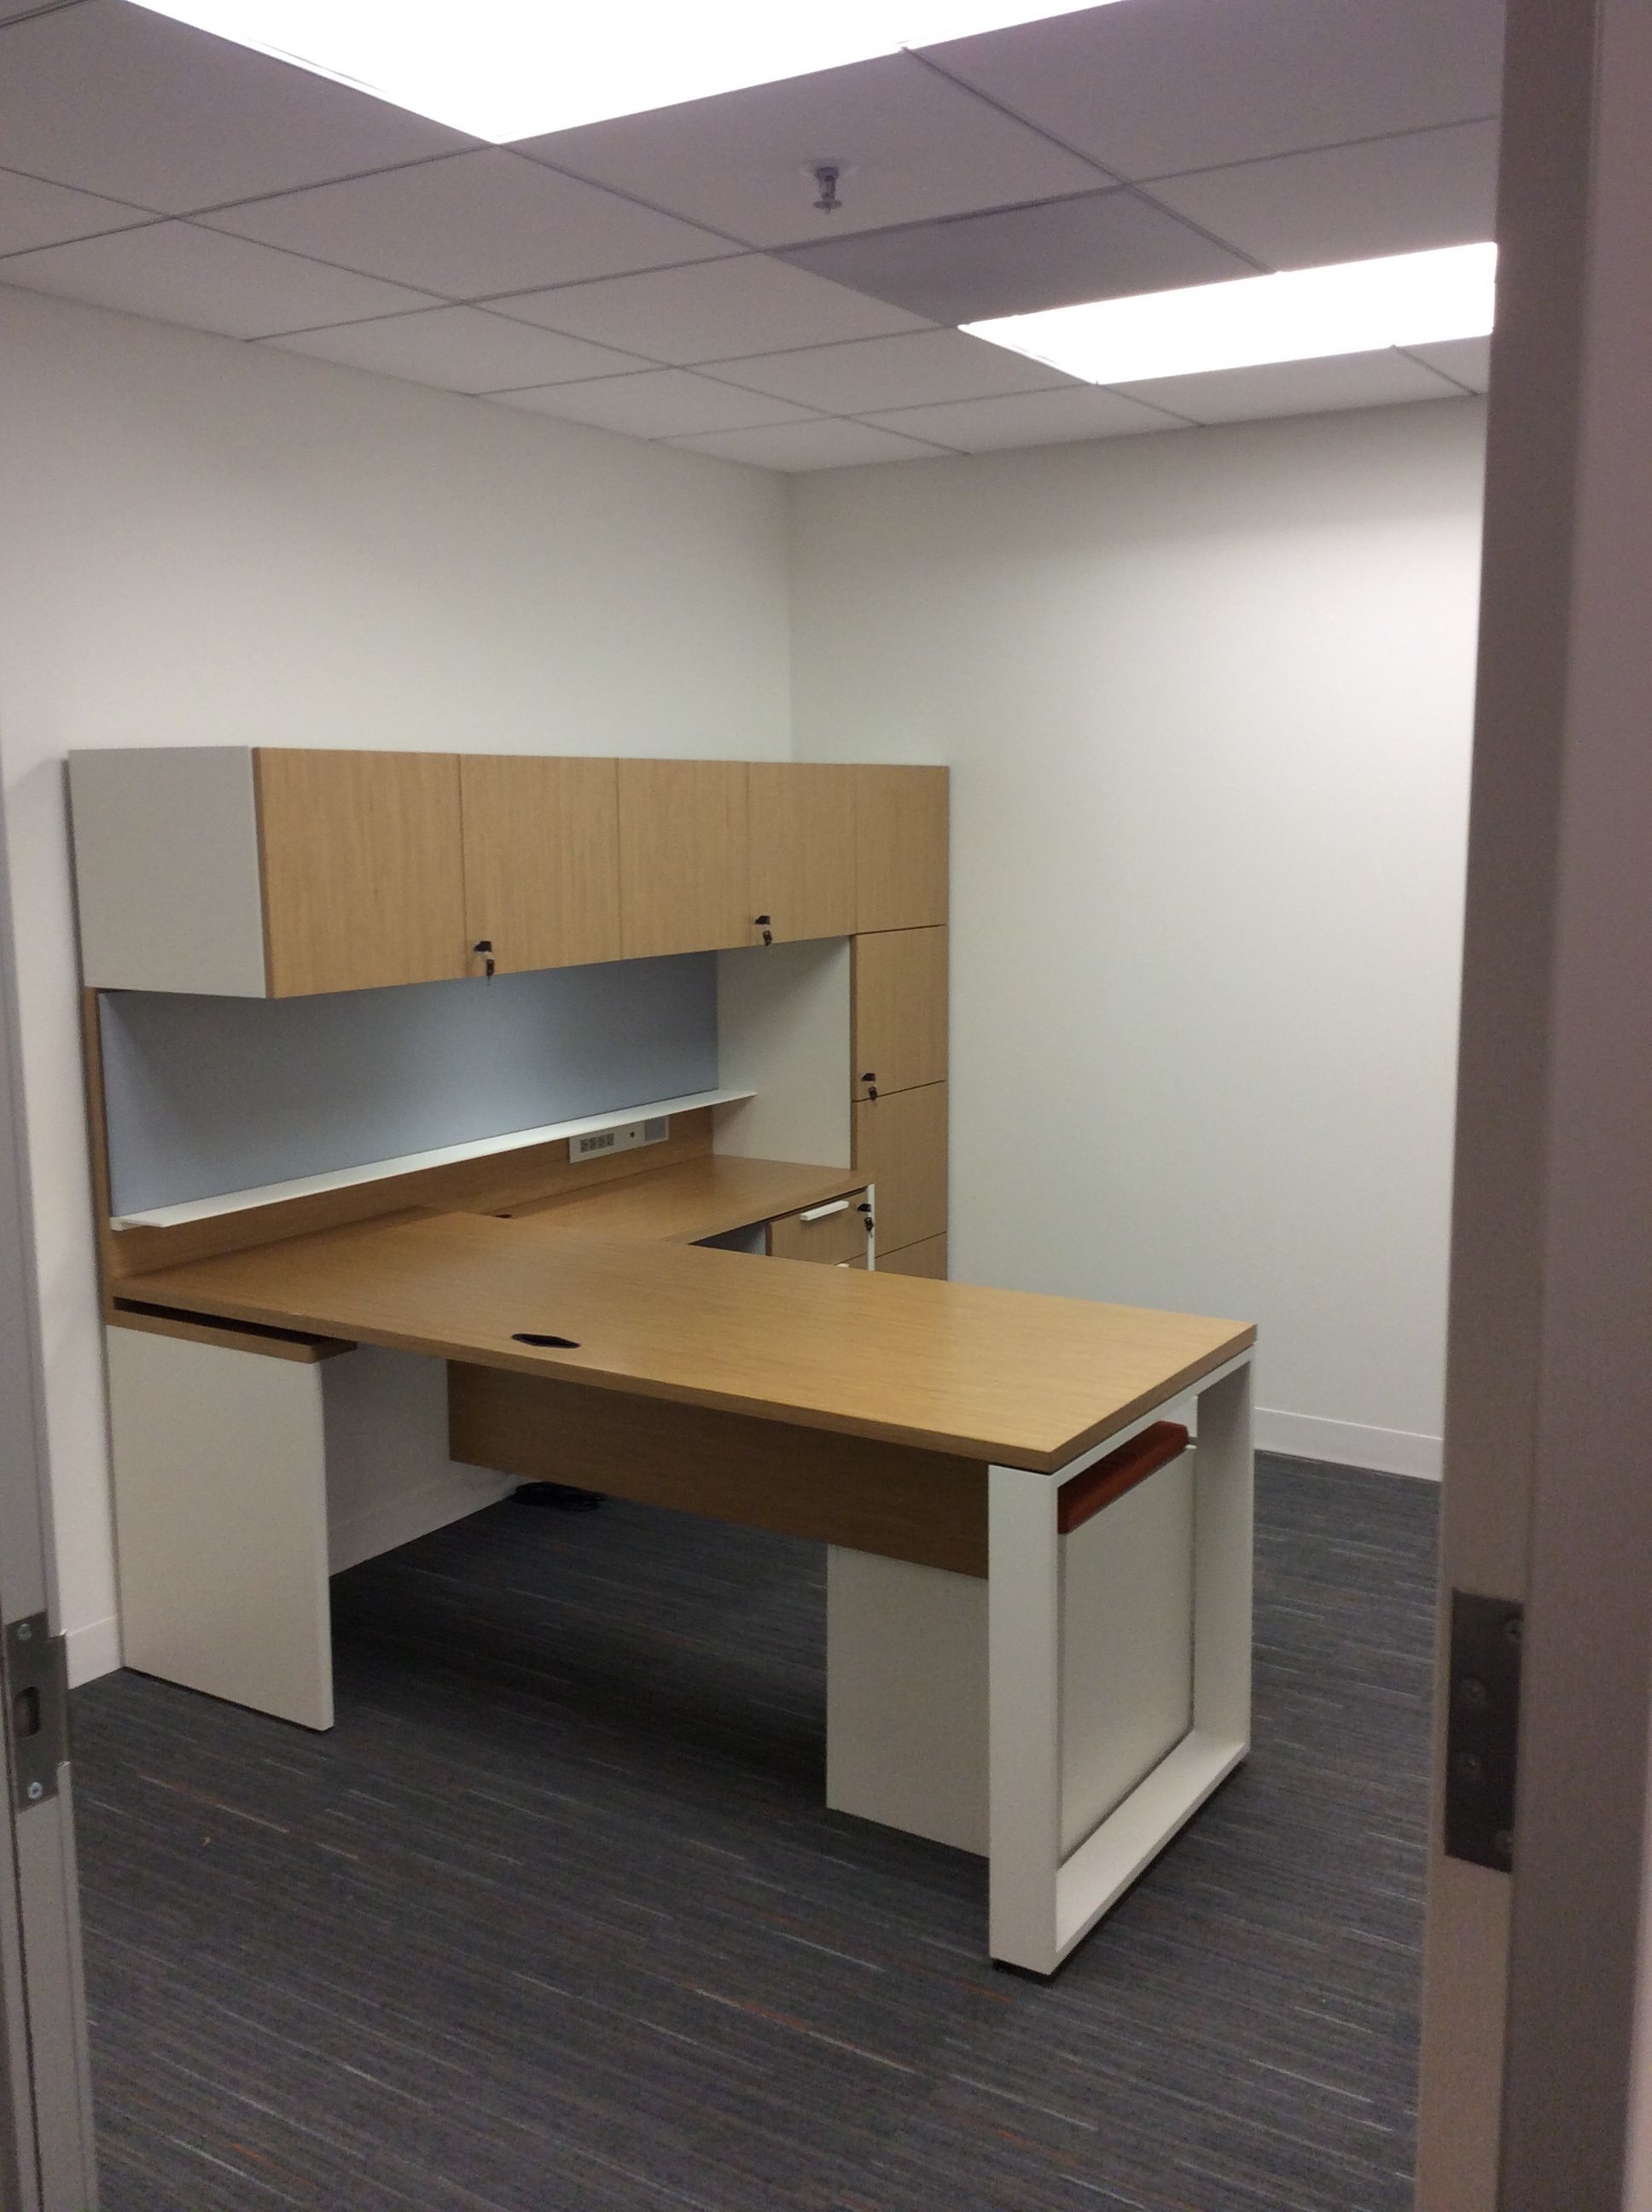 private office with teknion expansion casegoods. | washington, dc